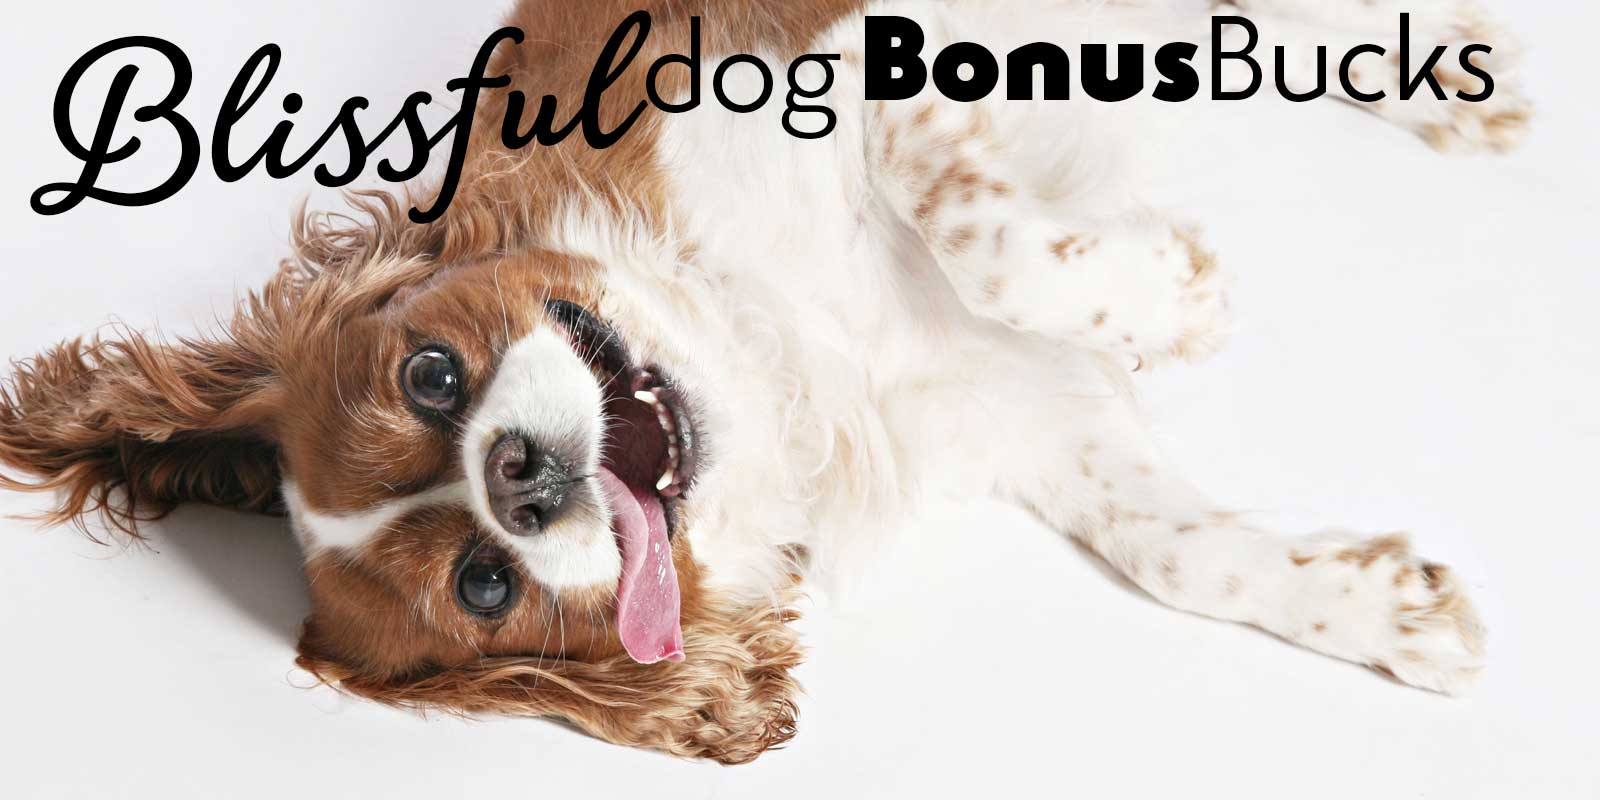 the blissful dog bonus bucks rewards